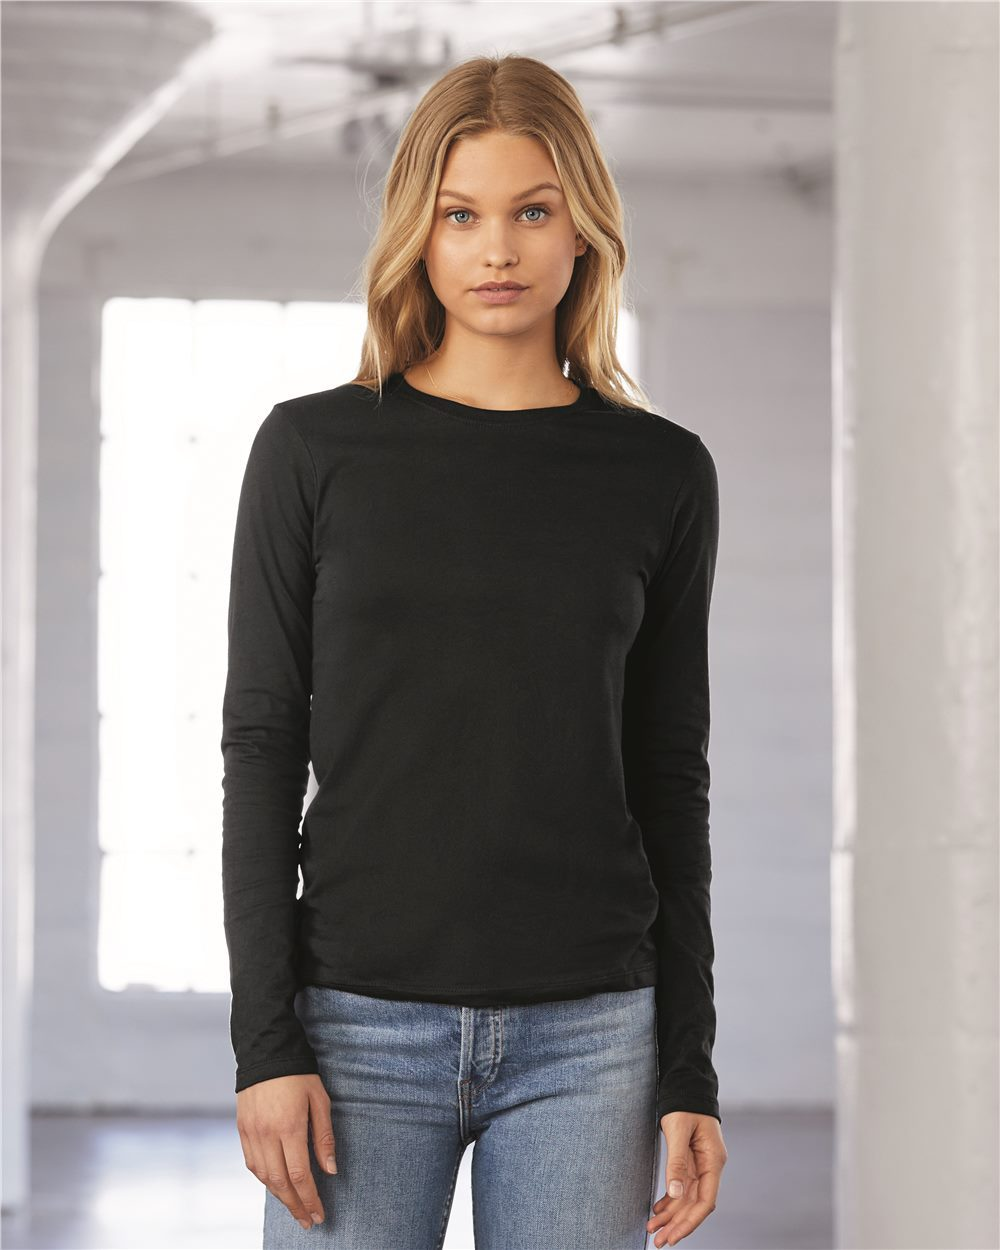 6500 Bella + Canvas Ladies' Jersey Long-Sleeve T-Shirt